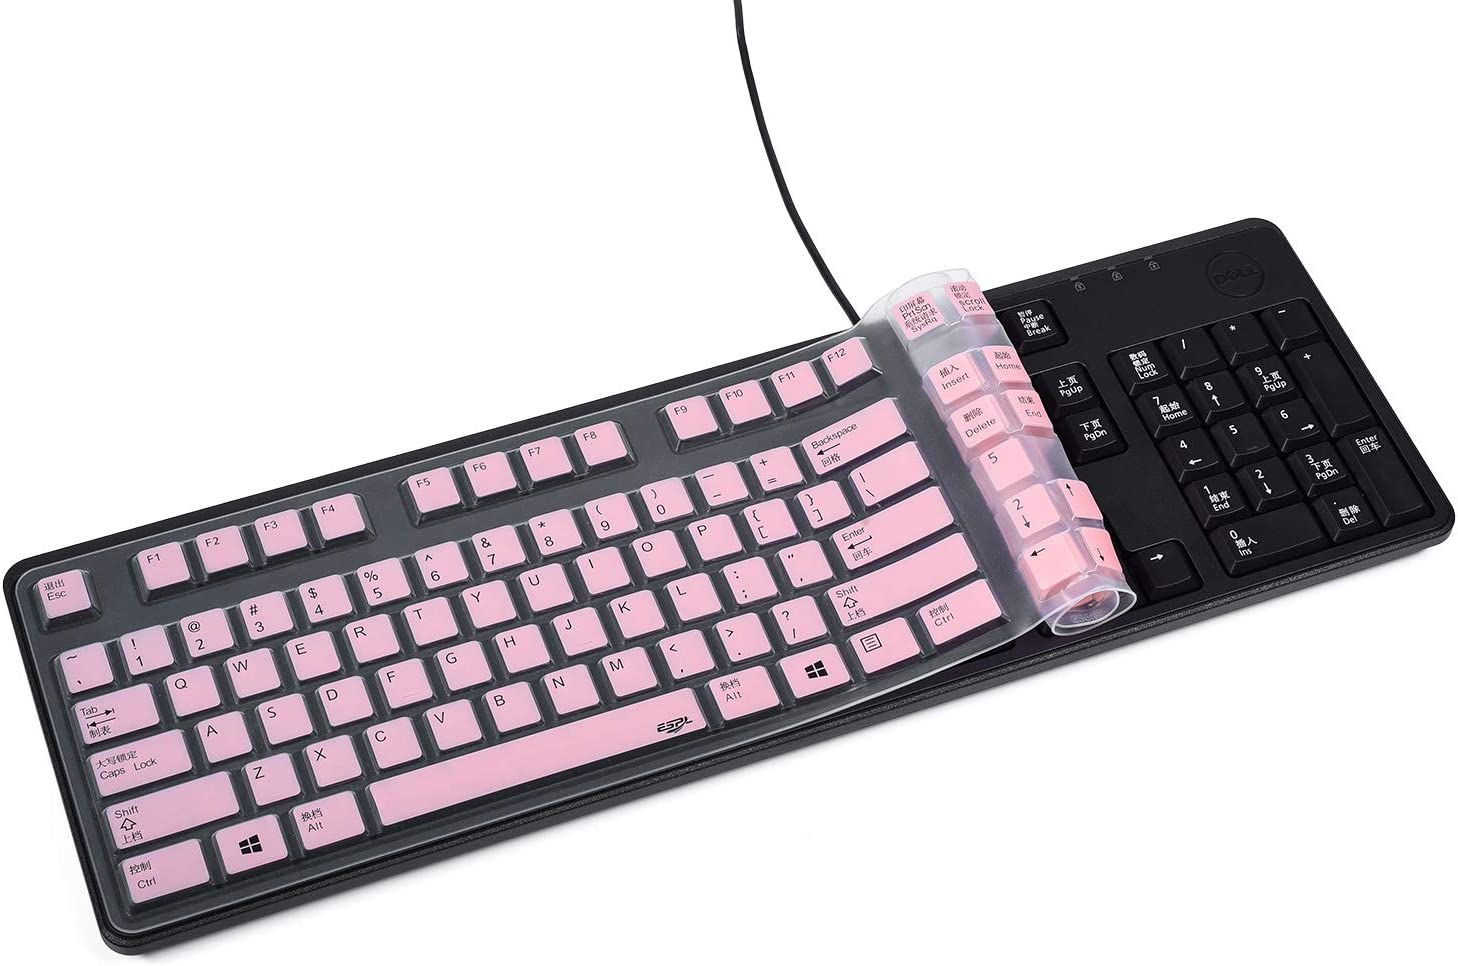 Black Anti Dust Waterproof Silicone Keyboard Protector Skin Cover for Dell Keyboard KB212-B KB4021 US Version